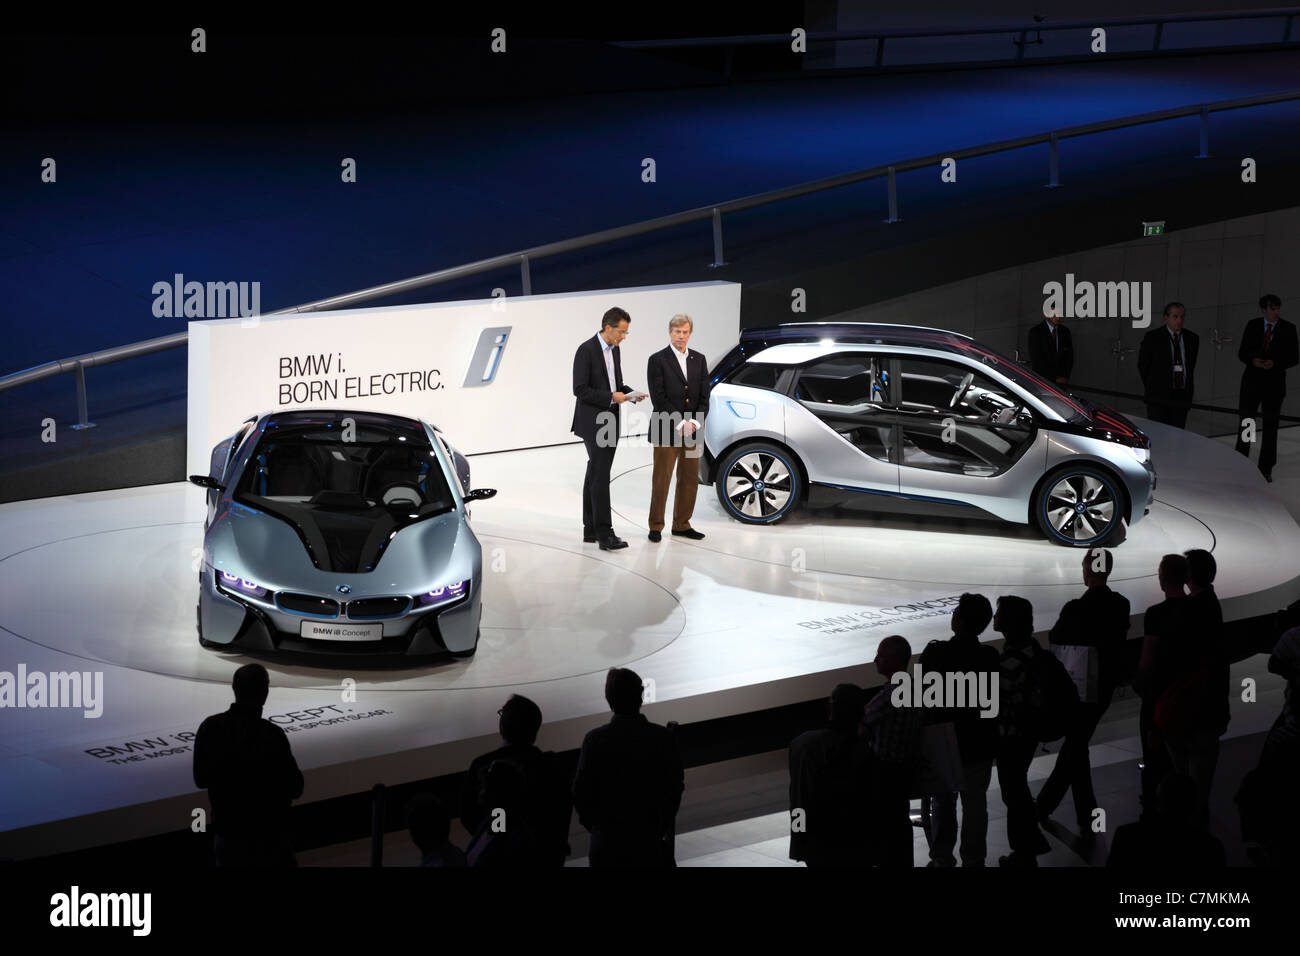 BMW electric concept cars i8 and i3 at the 64th IAA (Internationale Automobil Ausstellung) - Stock Image